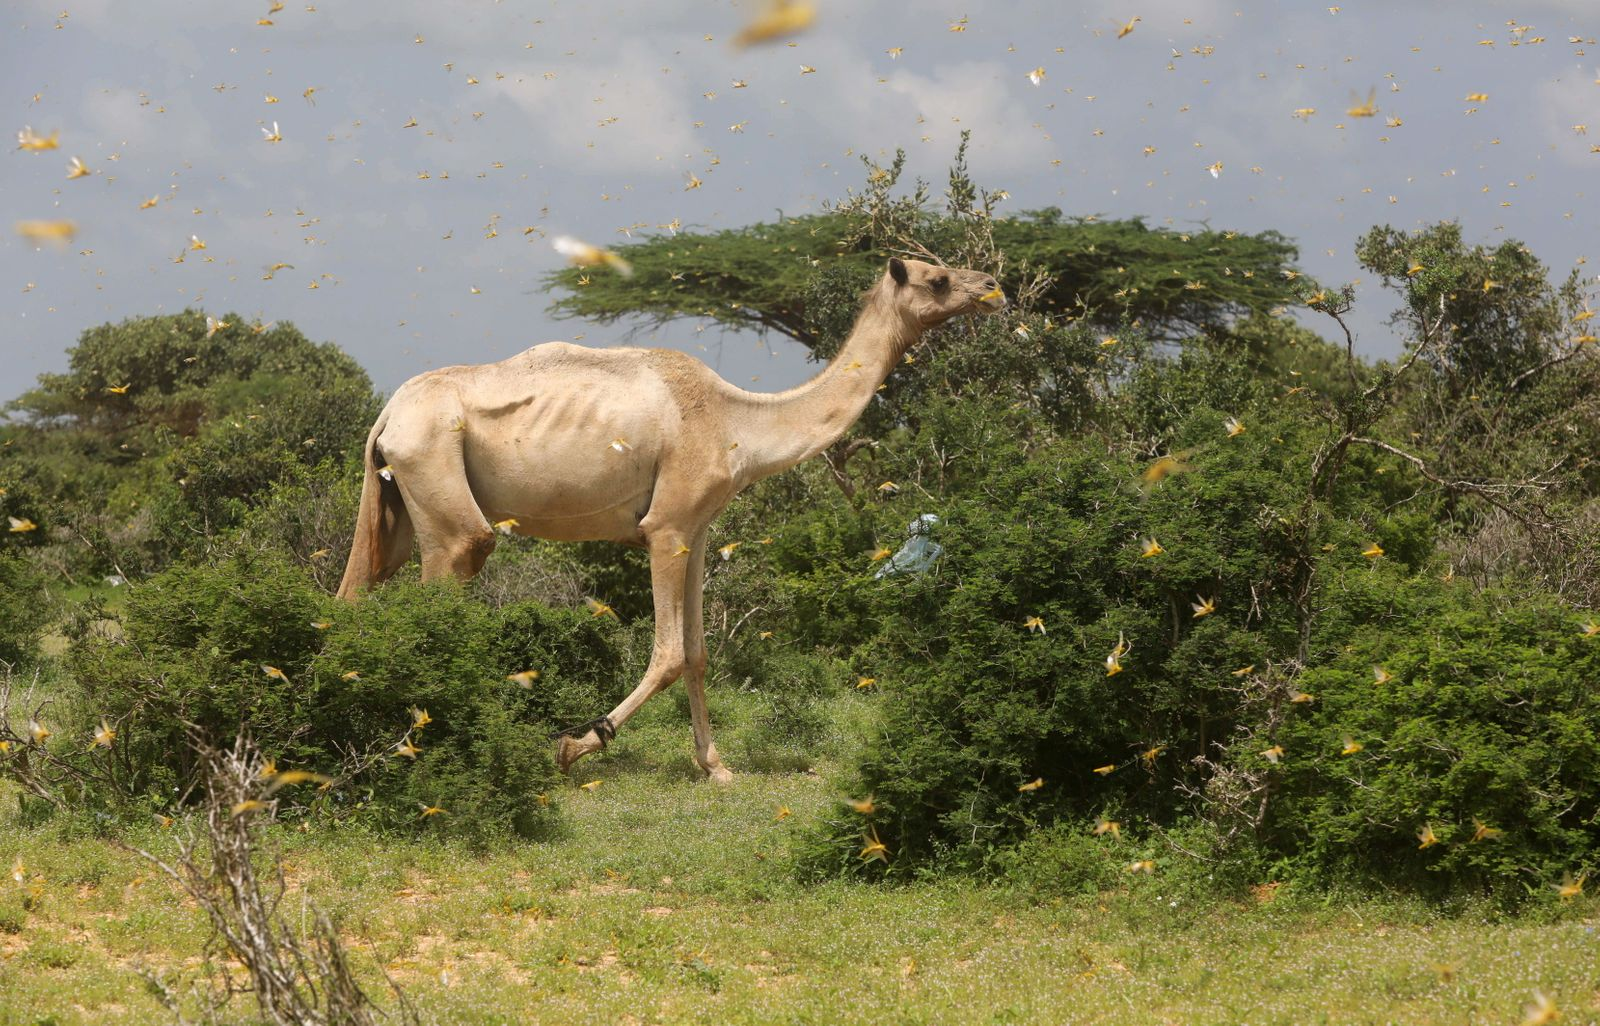 A camel walks through a swarm of desert locusts in a grazing land on the outskirts of Daynile district of Mogadishu